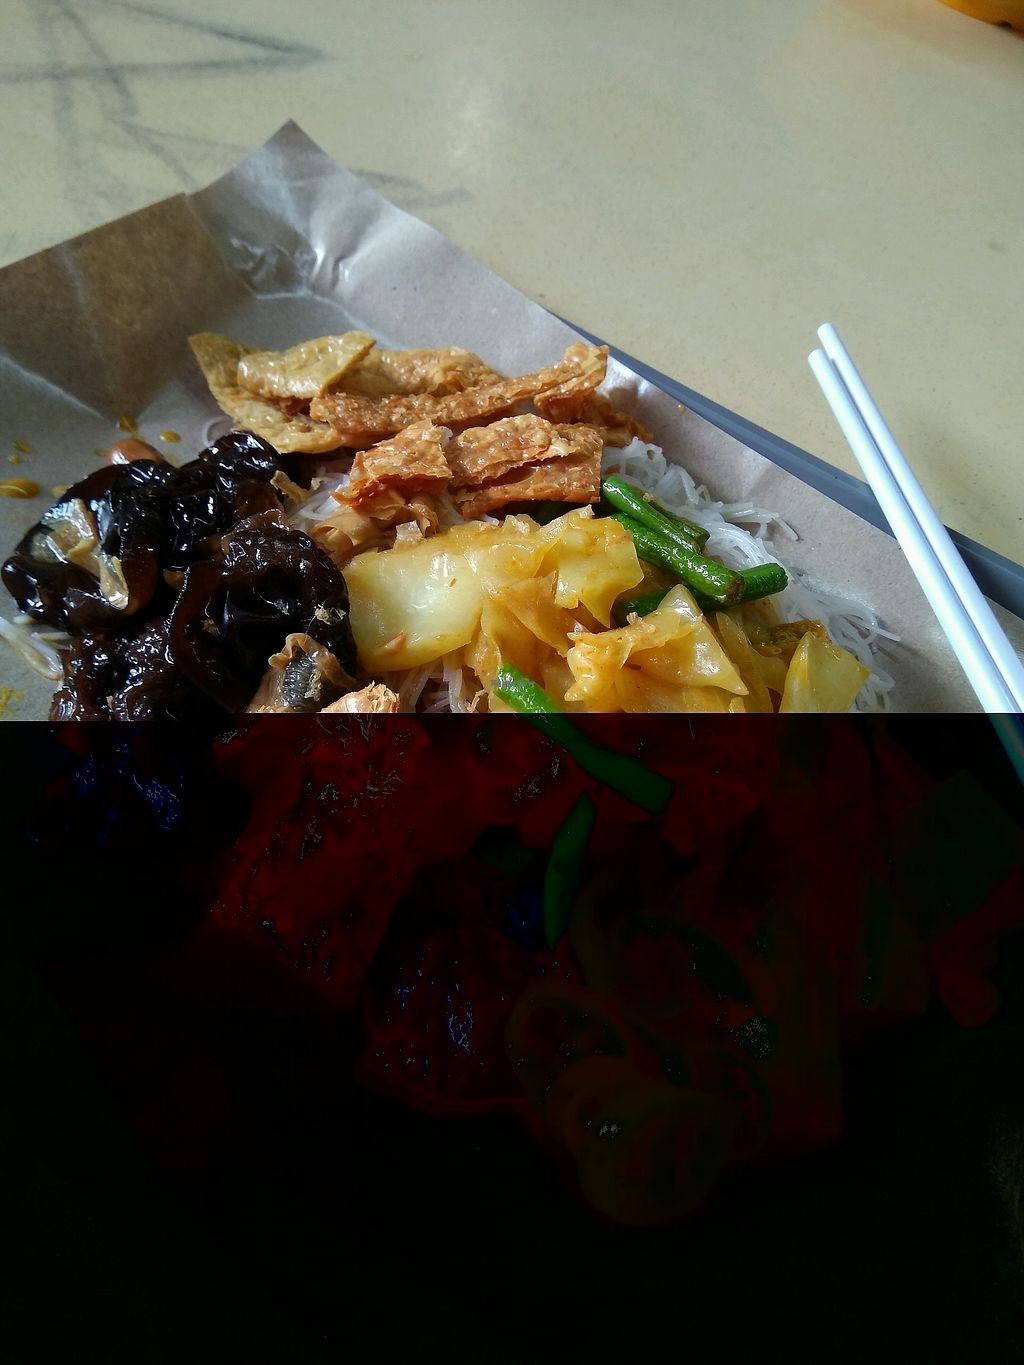 """Photo of CLOSED: Crystal Vegetarian - Blk 408 AMK  by <a href=""""/members/profile/AdelOng"""" class=""""title__title"""">AdelOng</a> <br/>3 items with mee hoon @$3 <br/> February 12, 2018  - <a href='/contact/abuse/image/97942/358157'>Report</a>"""